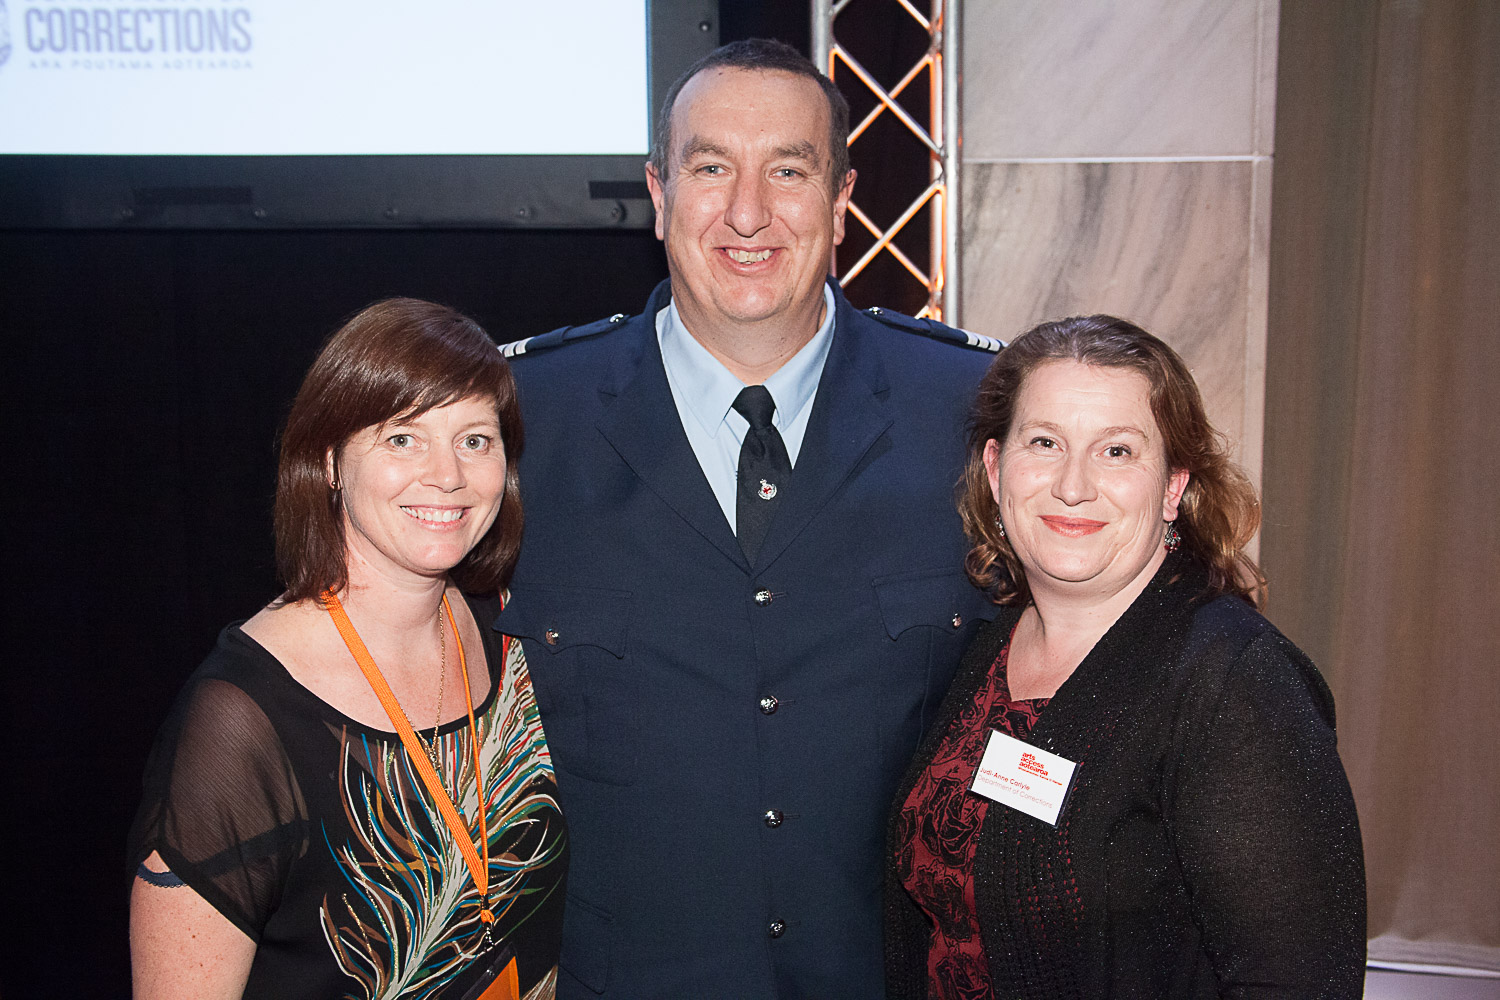 Jacqui Moyes, Arts Access Aotearoa, with Jason Carlyle and Judi-Anne Carlyle, Department of Corrections, at the Arts Access Awards 2014. Jason was recognised for his work in supporting arts actvities in Christchurch Prison as a rehabilitative tool.